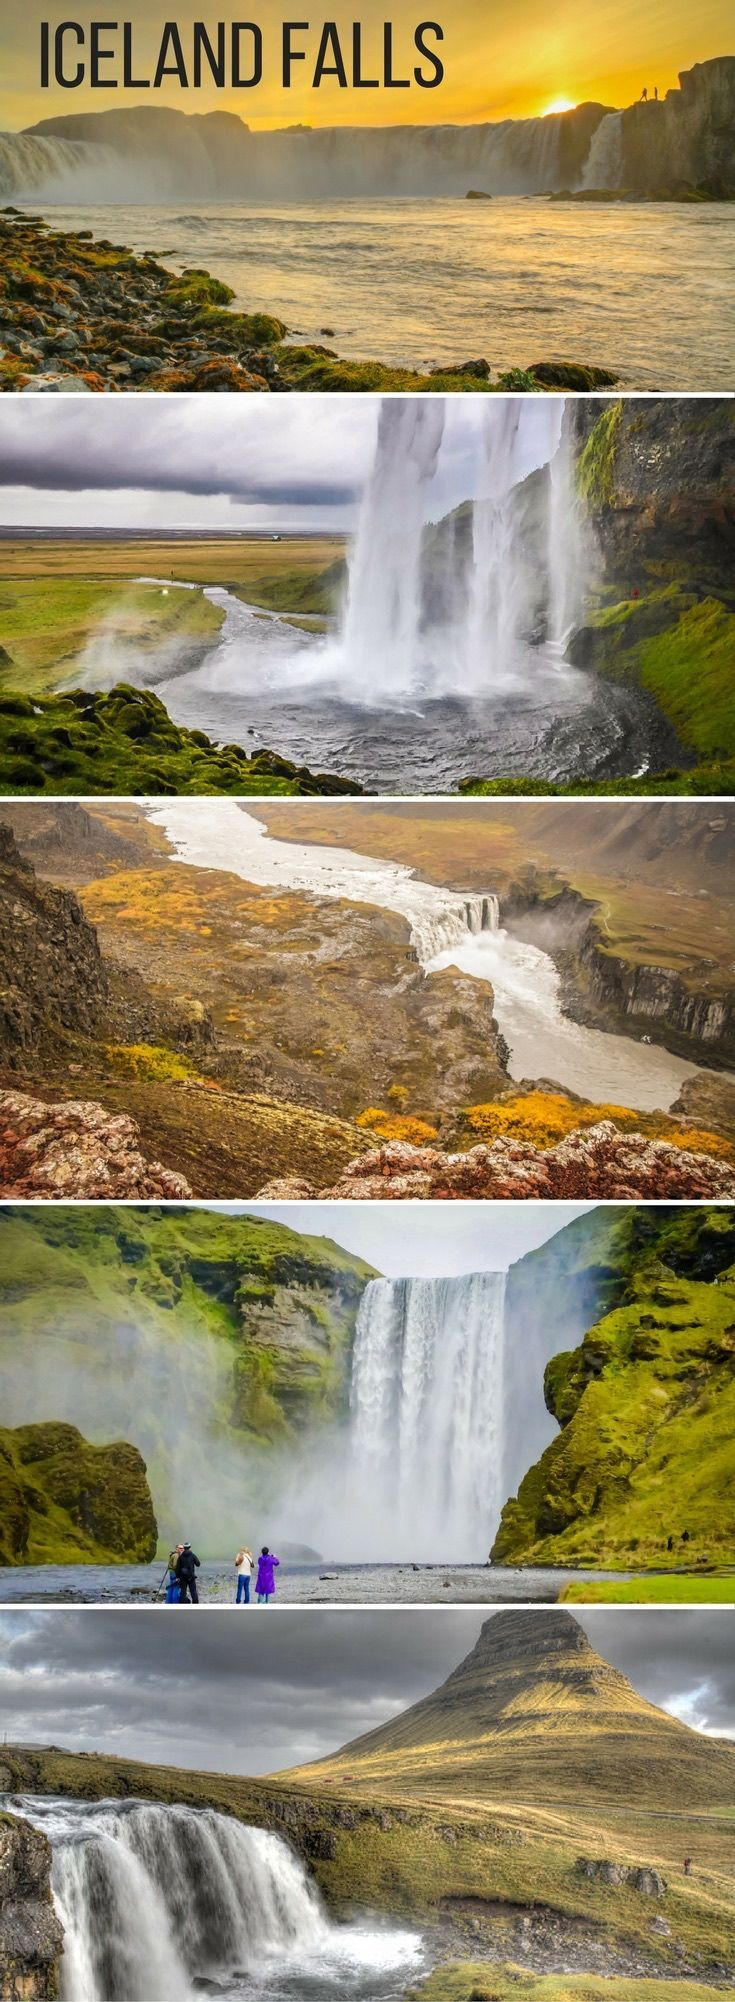 21 amazing Waterfalls in Iceland - Photos and Videos of the most majestic, the unusual, the largest falls... Includes the famous Seljalandsfoss and Skogafoss, as well as off the beaten track waterfalls - https://www.zigzagonearth.com/waterfalls-list-icela